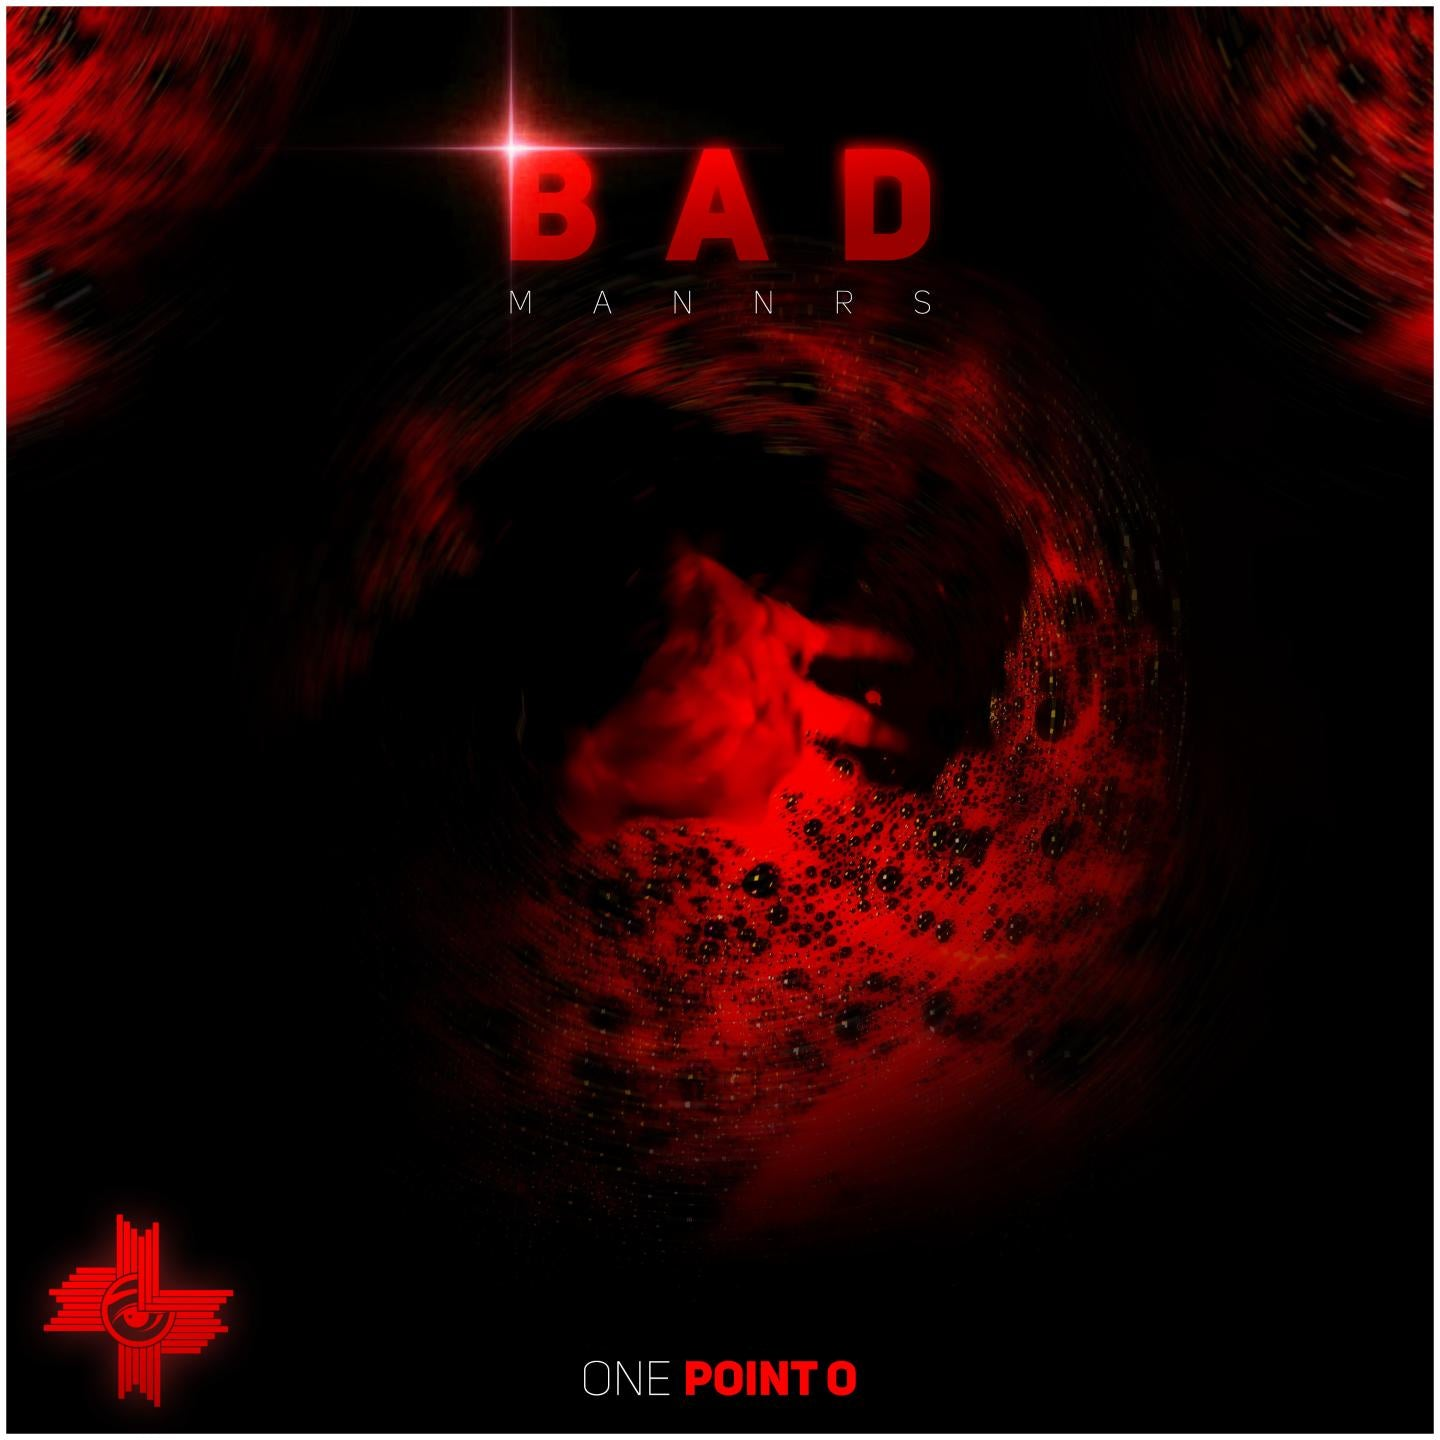 Bad Mannrs - One Point O